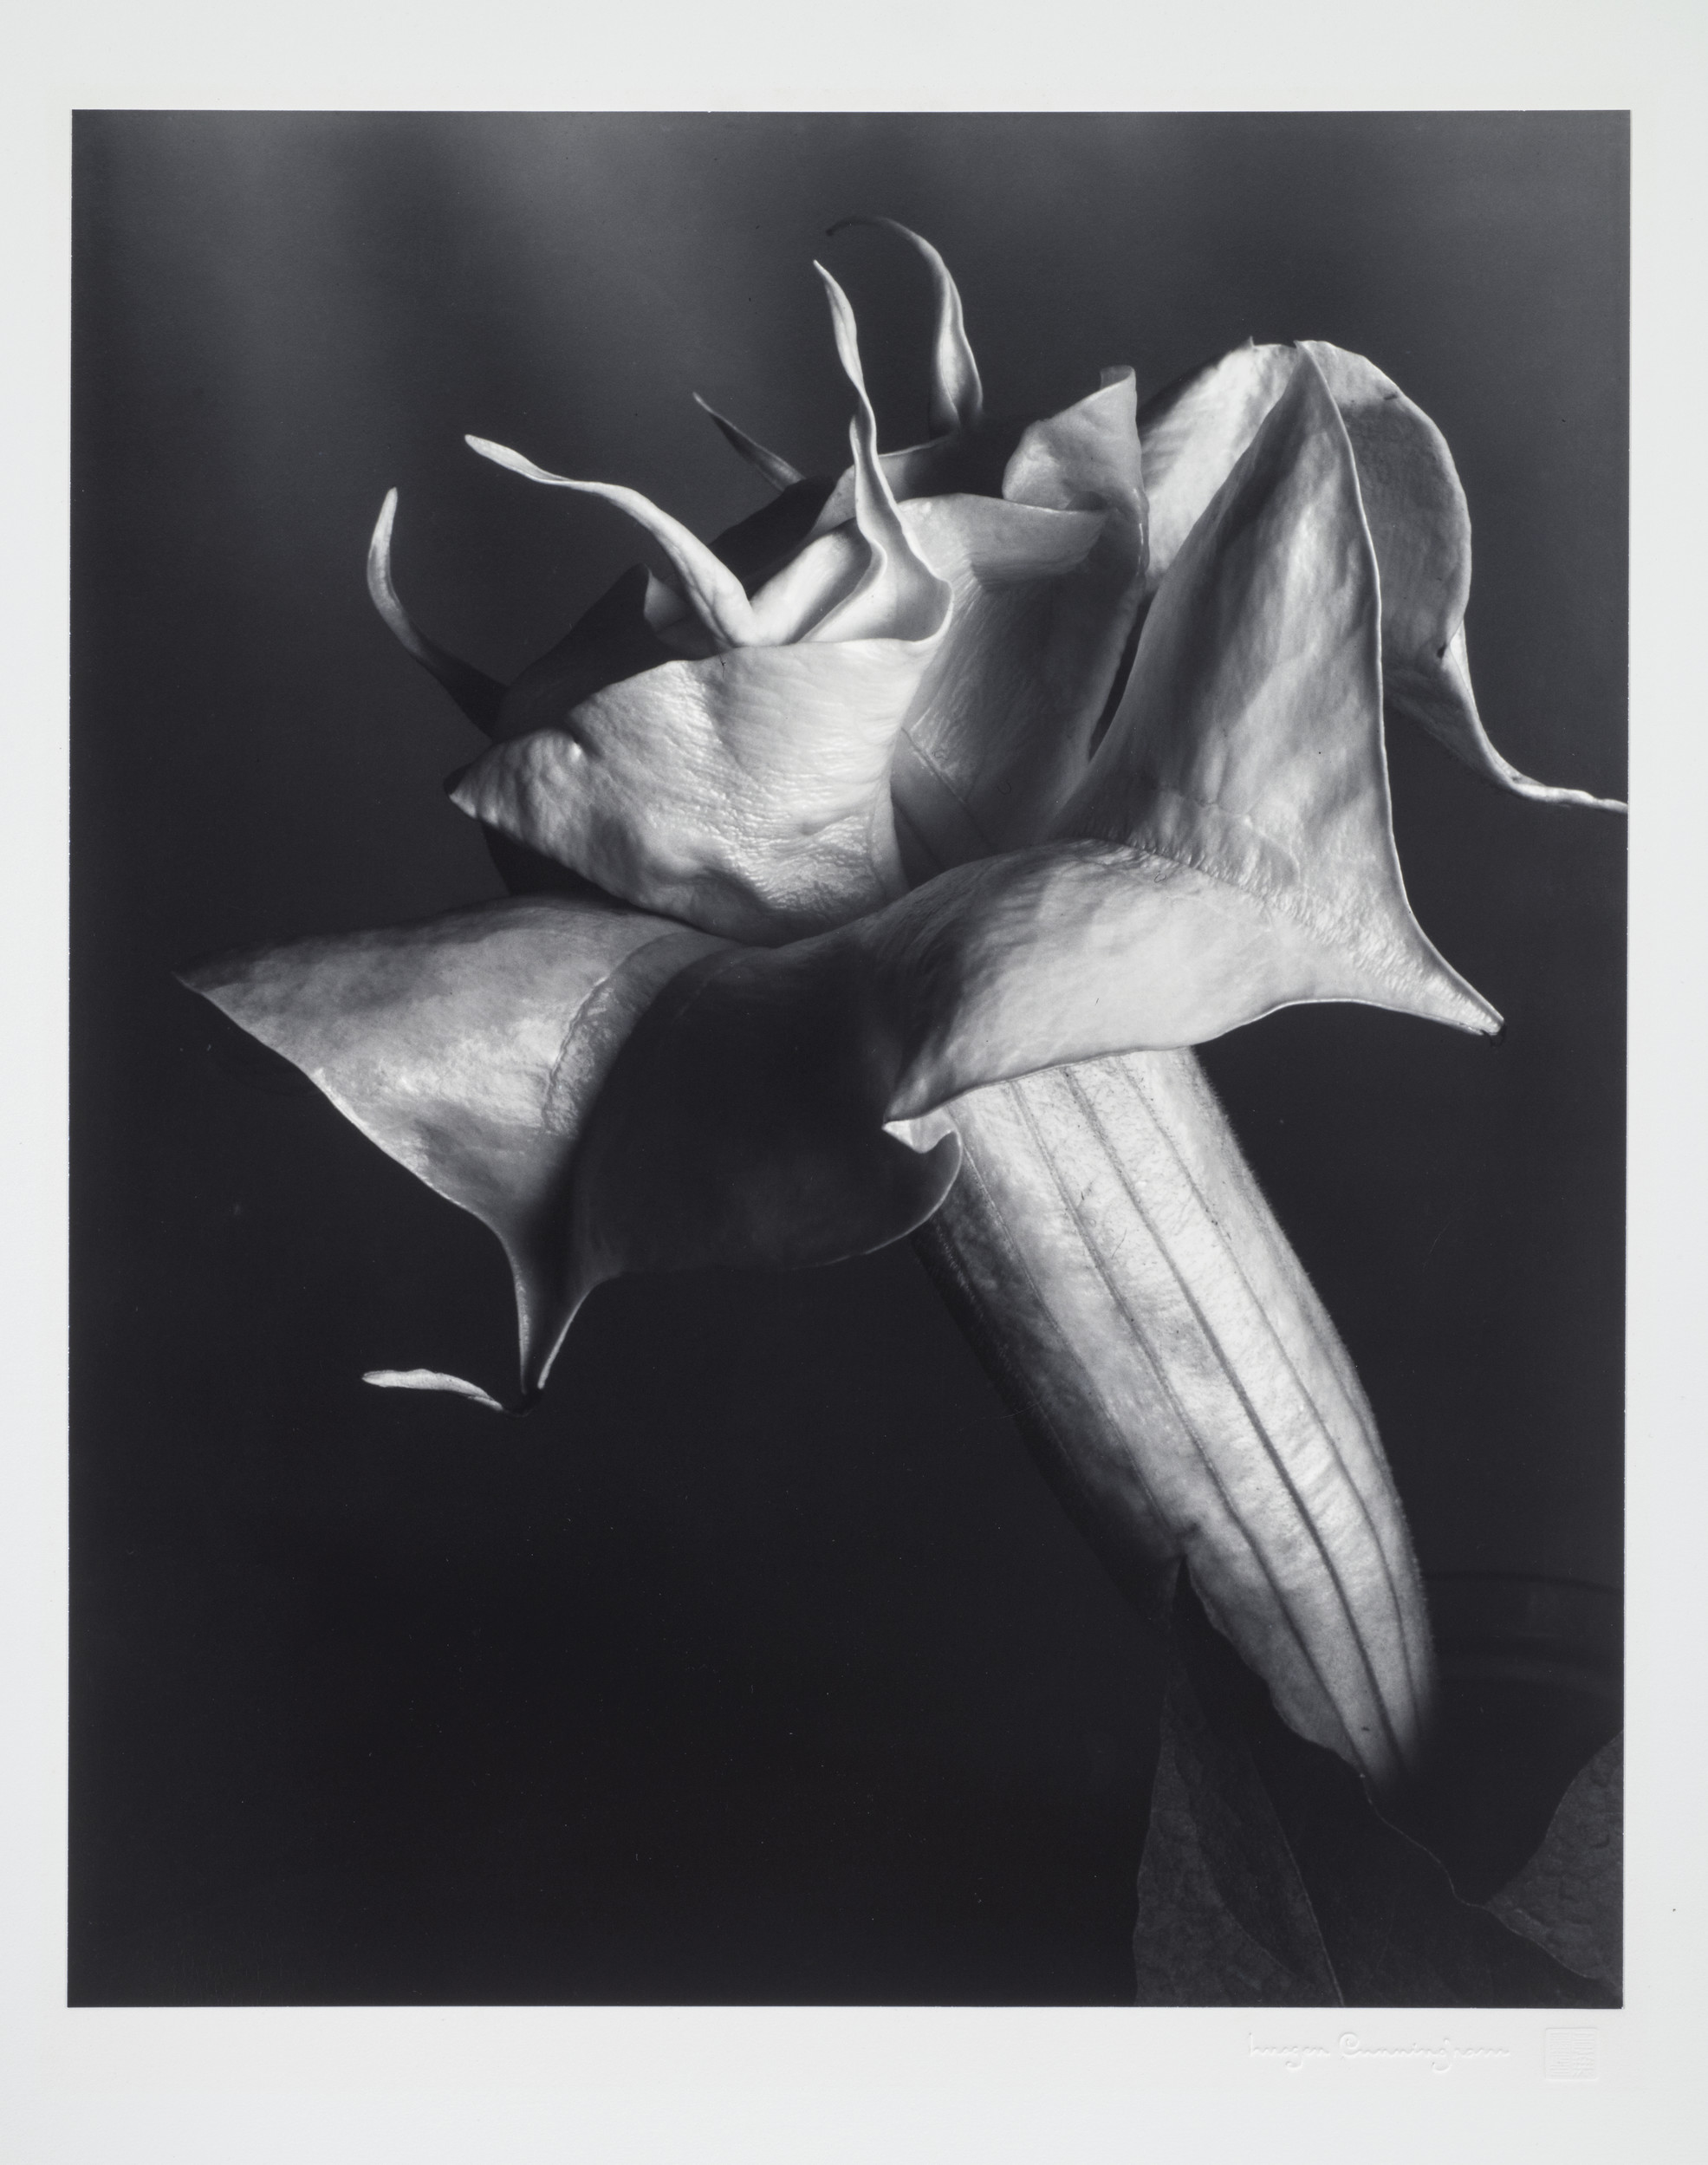 A black and white photograph of a Datura flower. The flower's bloom is in profile, and the high contrast image, set against a dark background, reveals each fold, ripple, and vein in the flower's stem and petals.